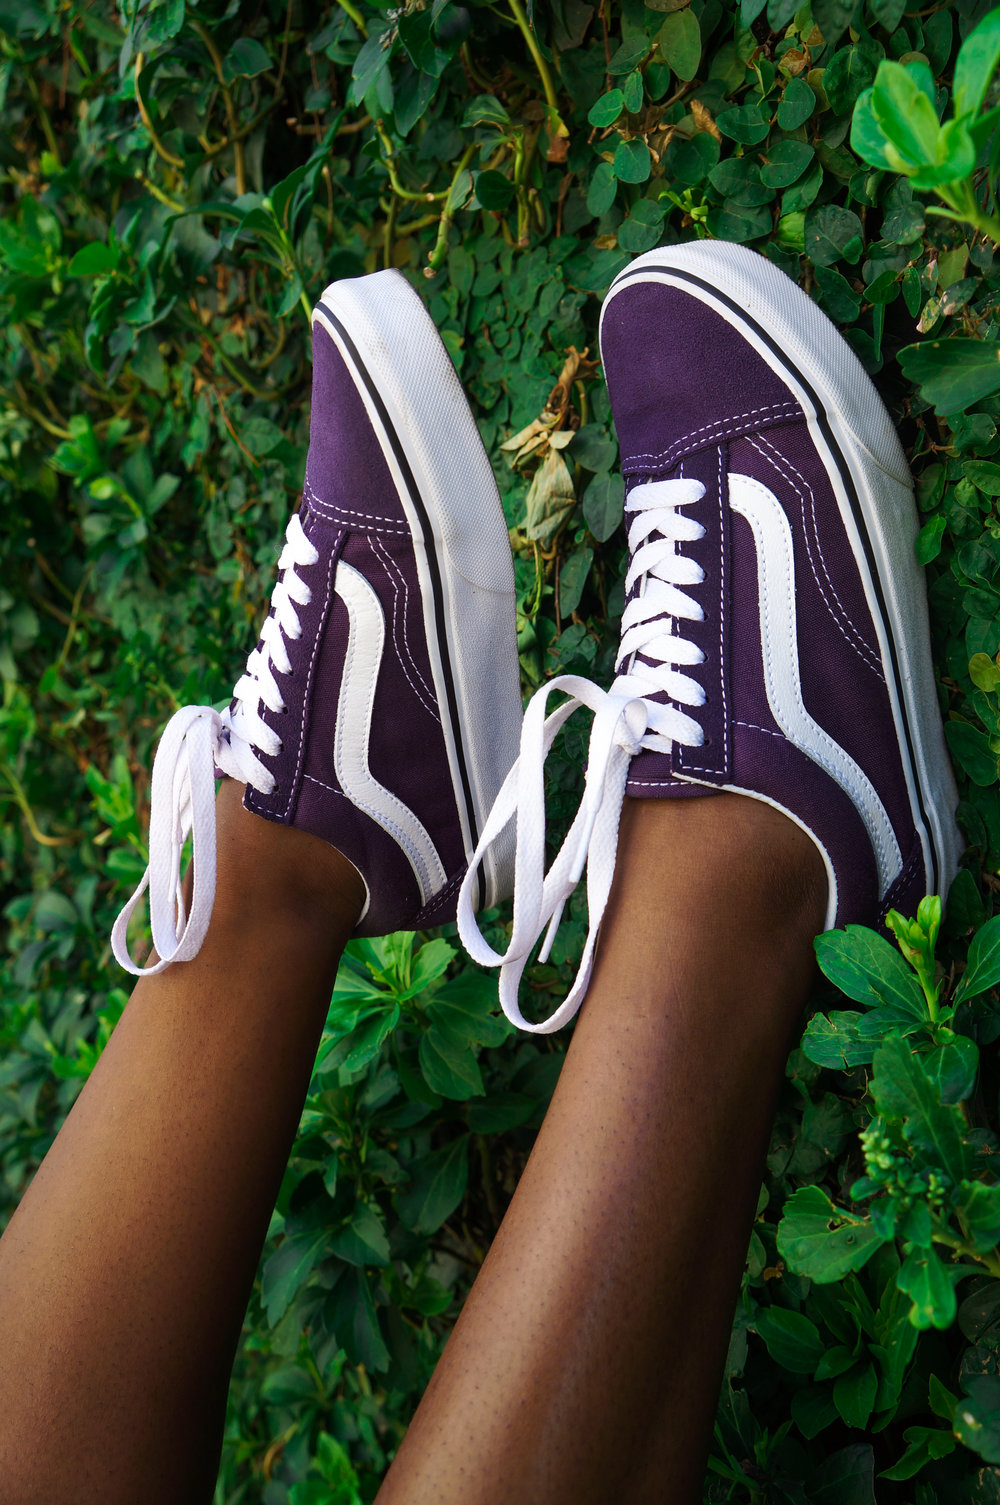 Snag these grape Old Skool Original Vans at  Urban Outfitters  to complete your look